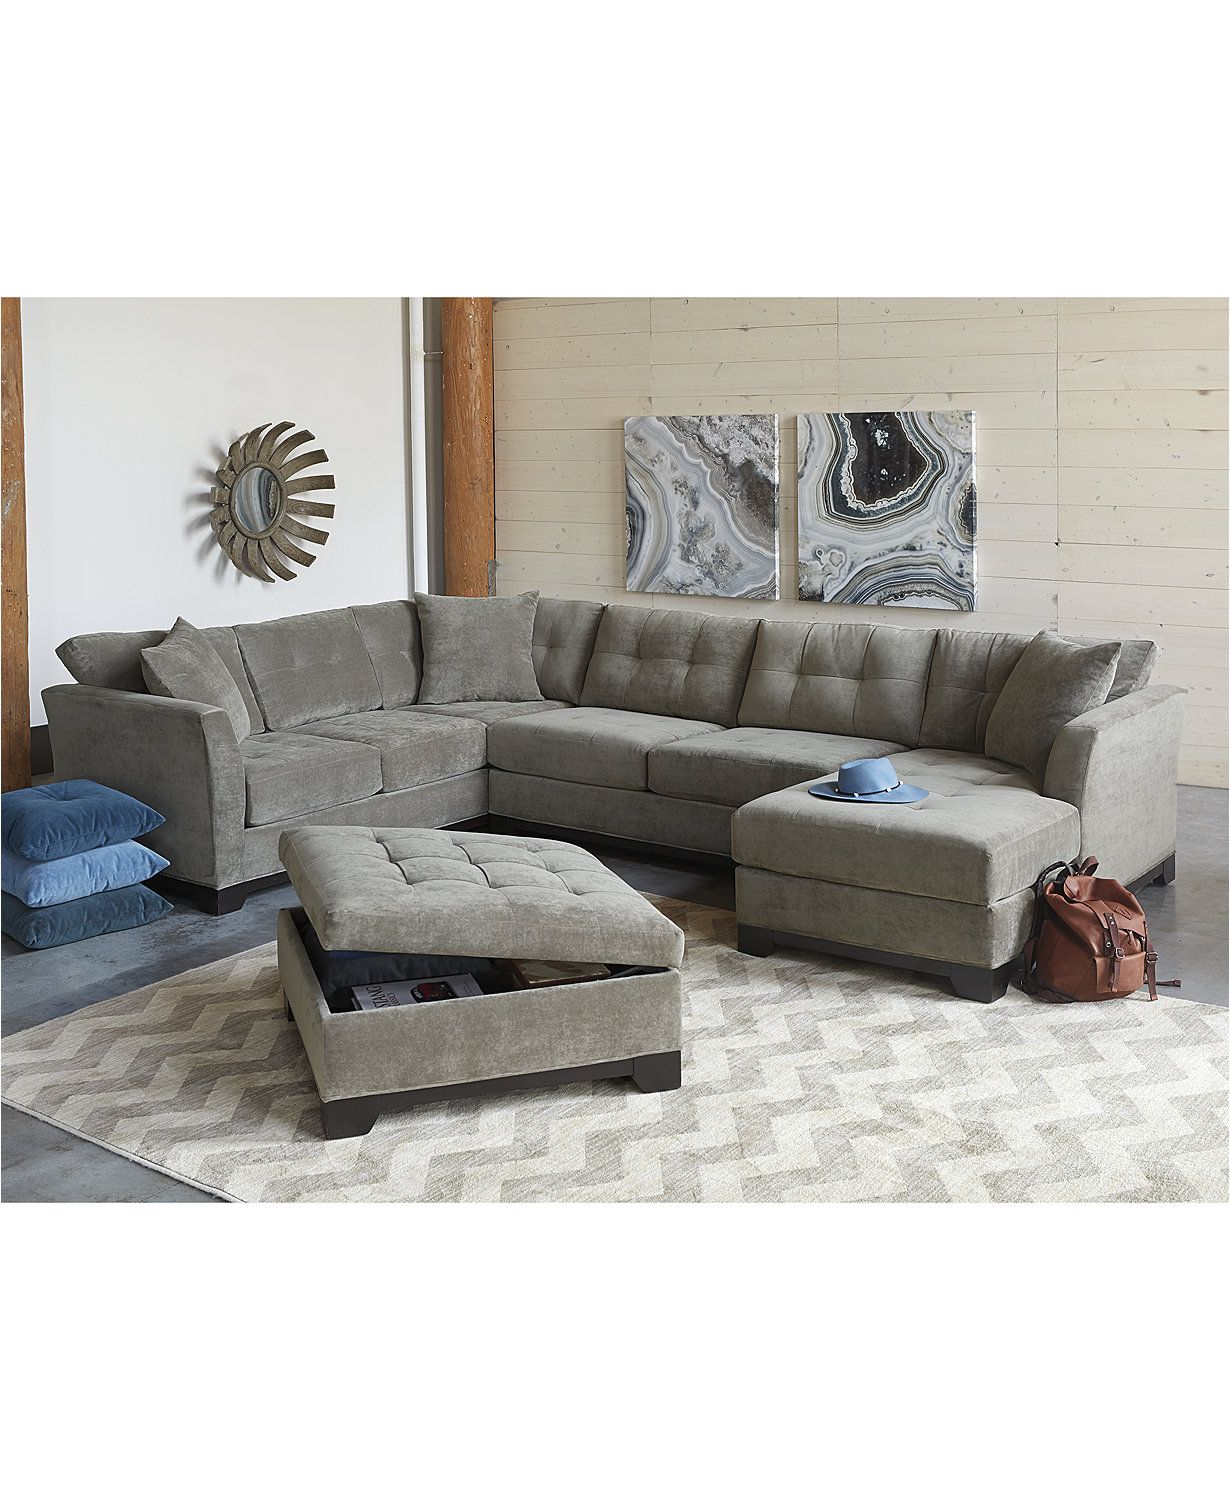 Elliot Fabric Sectional Living Room Furniture Collection Chairs For Small Spaces Closeout Created Macy S Macys Com